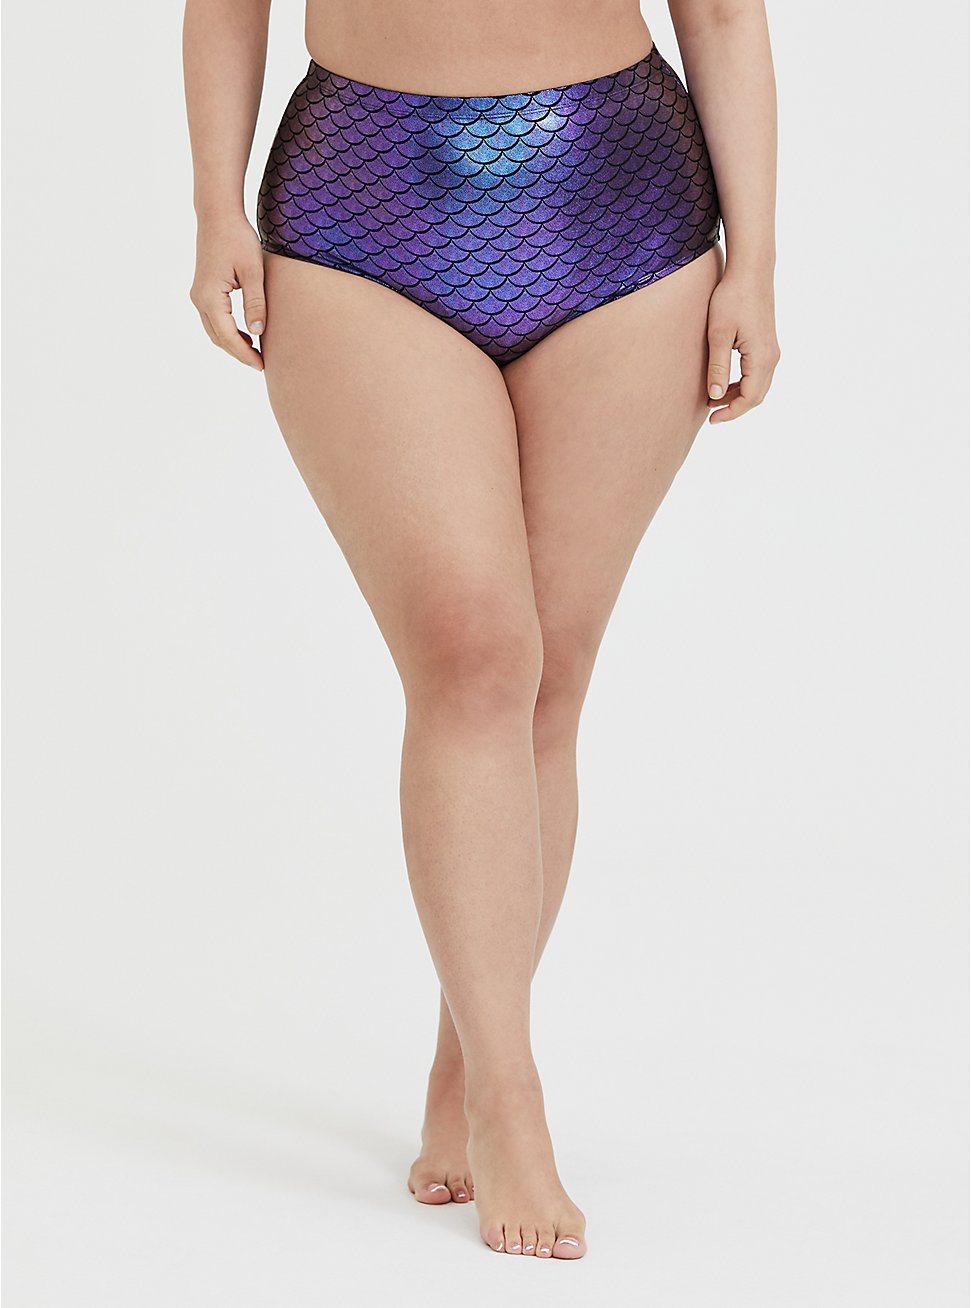 Purple Iridescent Mermaid High Waist Swim Bottom, MULTI, hi-res